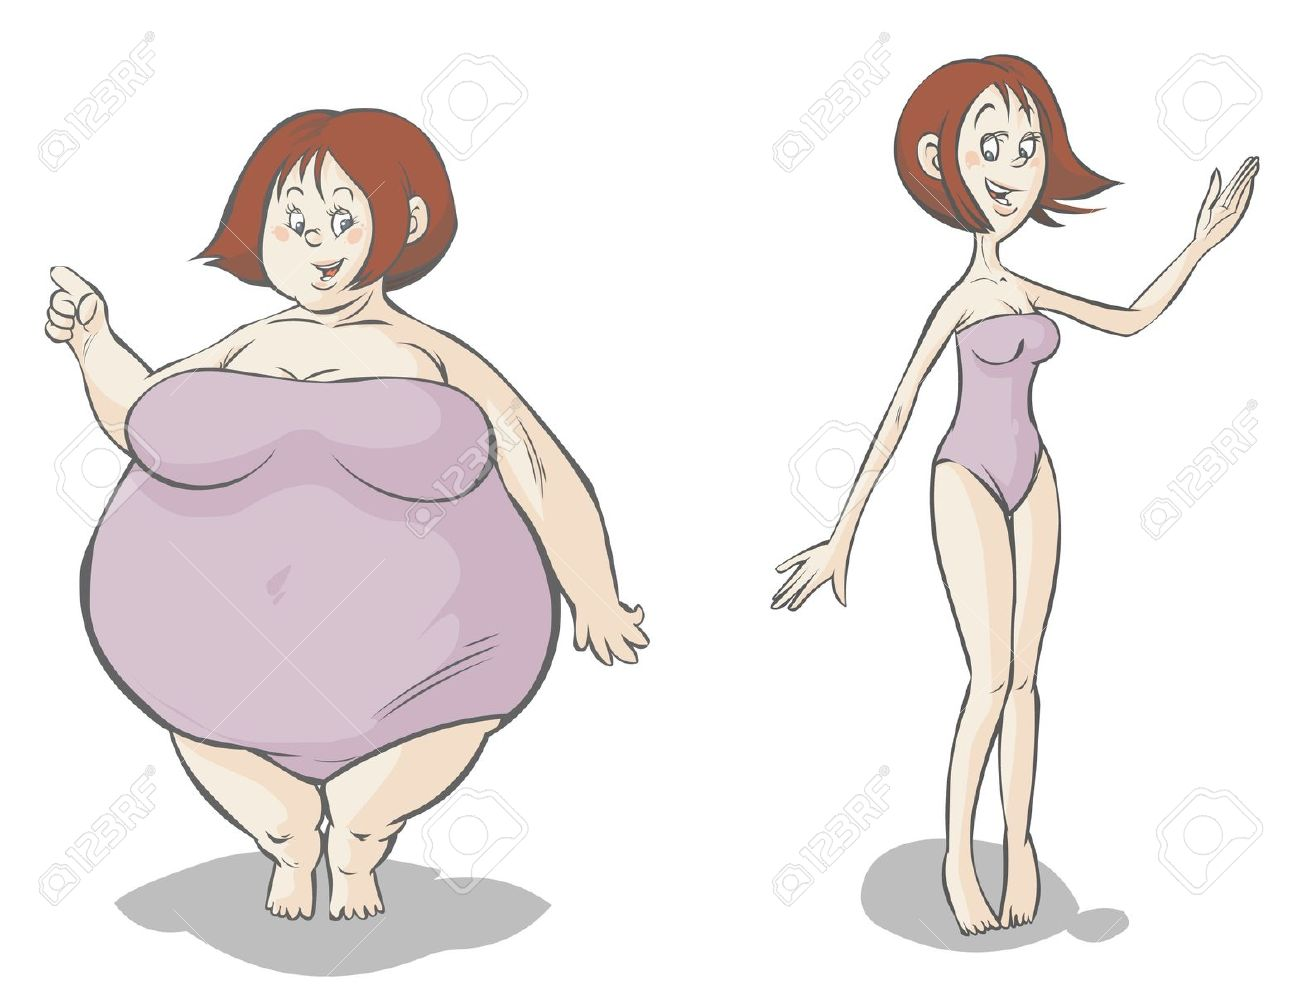 Fat vs thin clipart clipart freeuse stock Cartoon Fat-slim Female Characters Royalty Free Cliparts, Vectors ... clipart freeuse stock